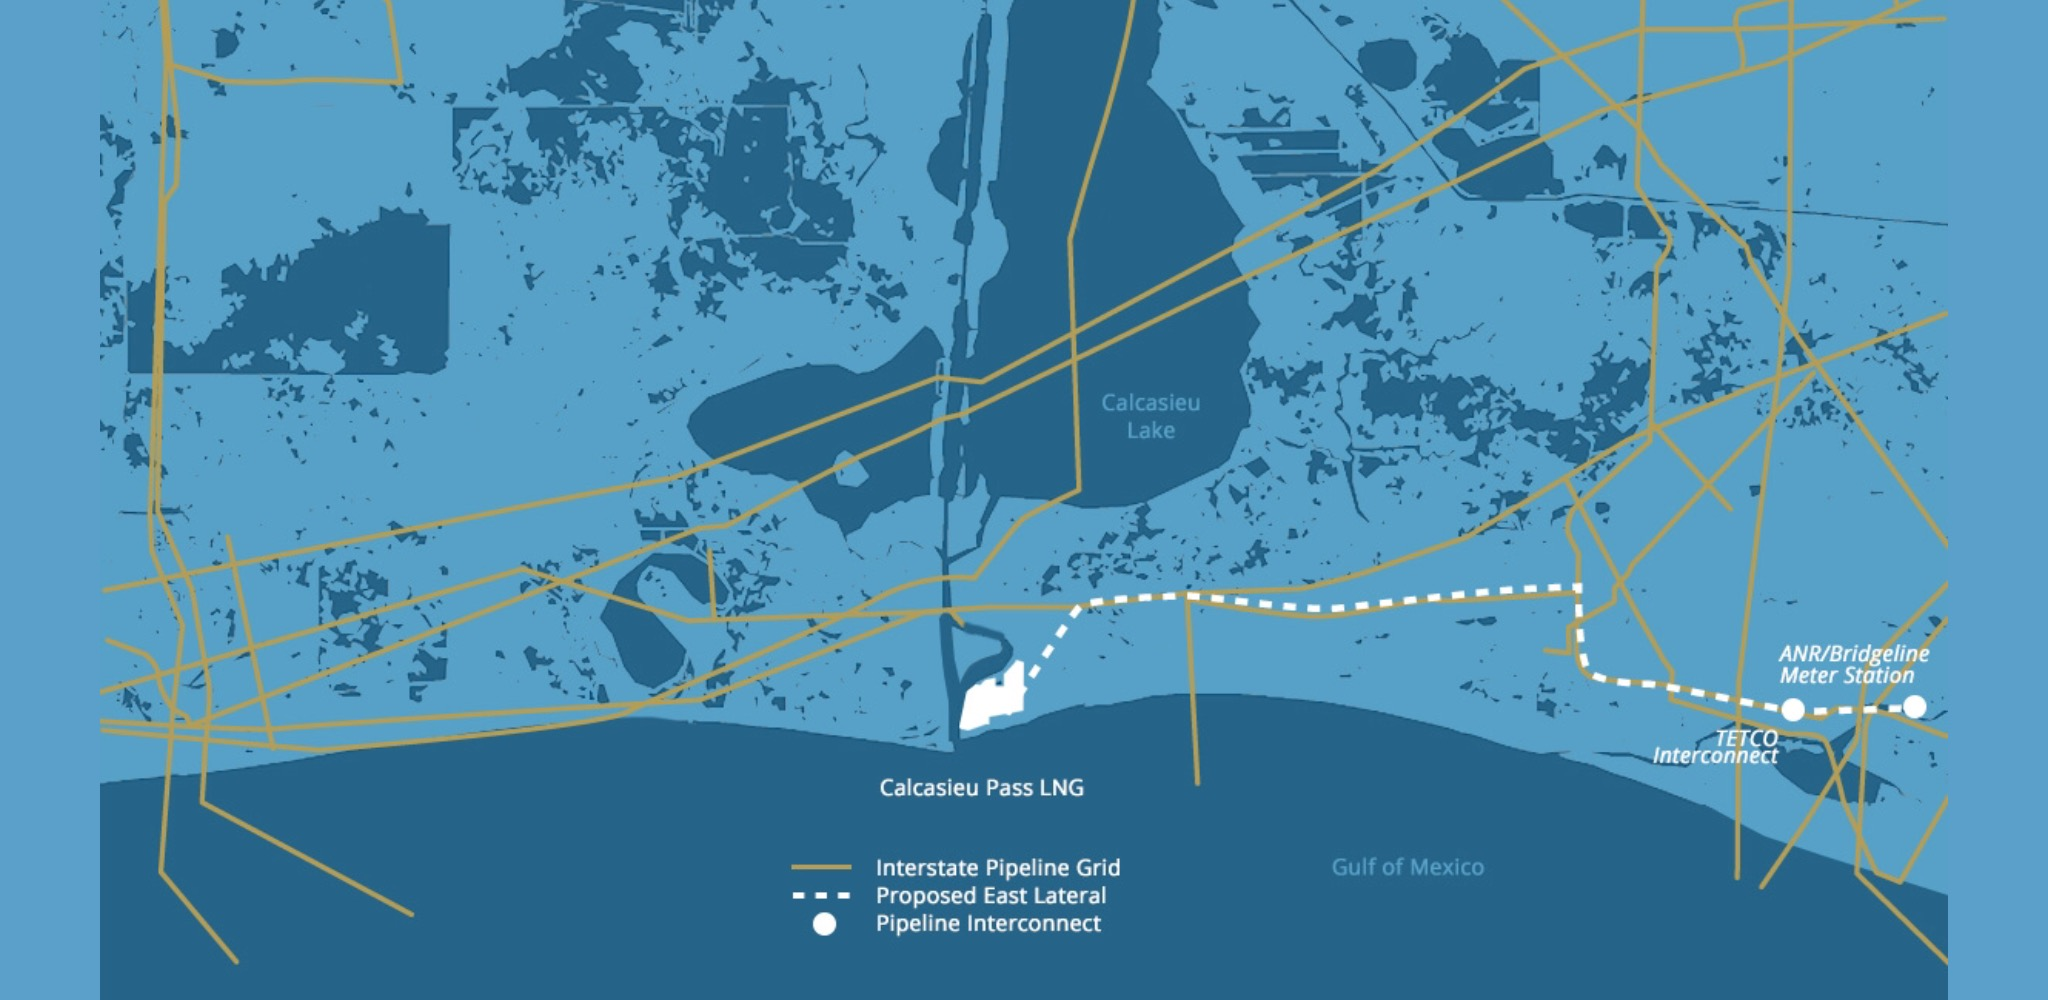 The Venture Global's LNG Calcasieu Pass project map, as reported on company's website